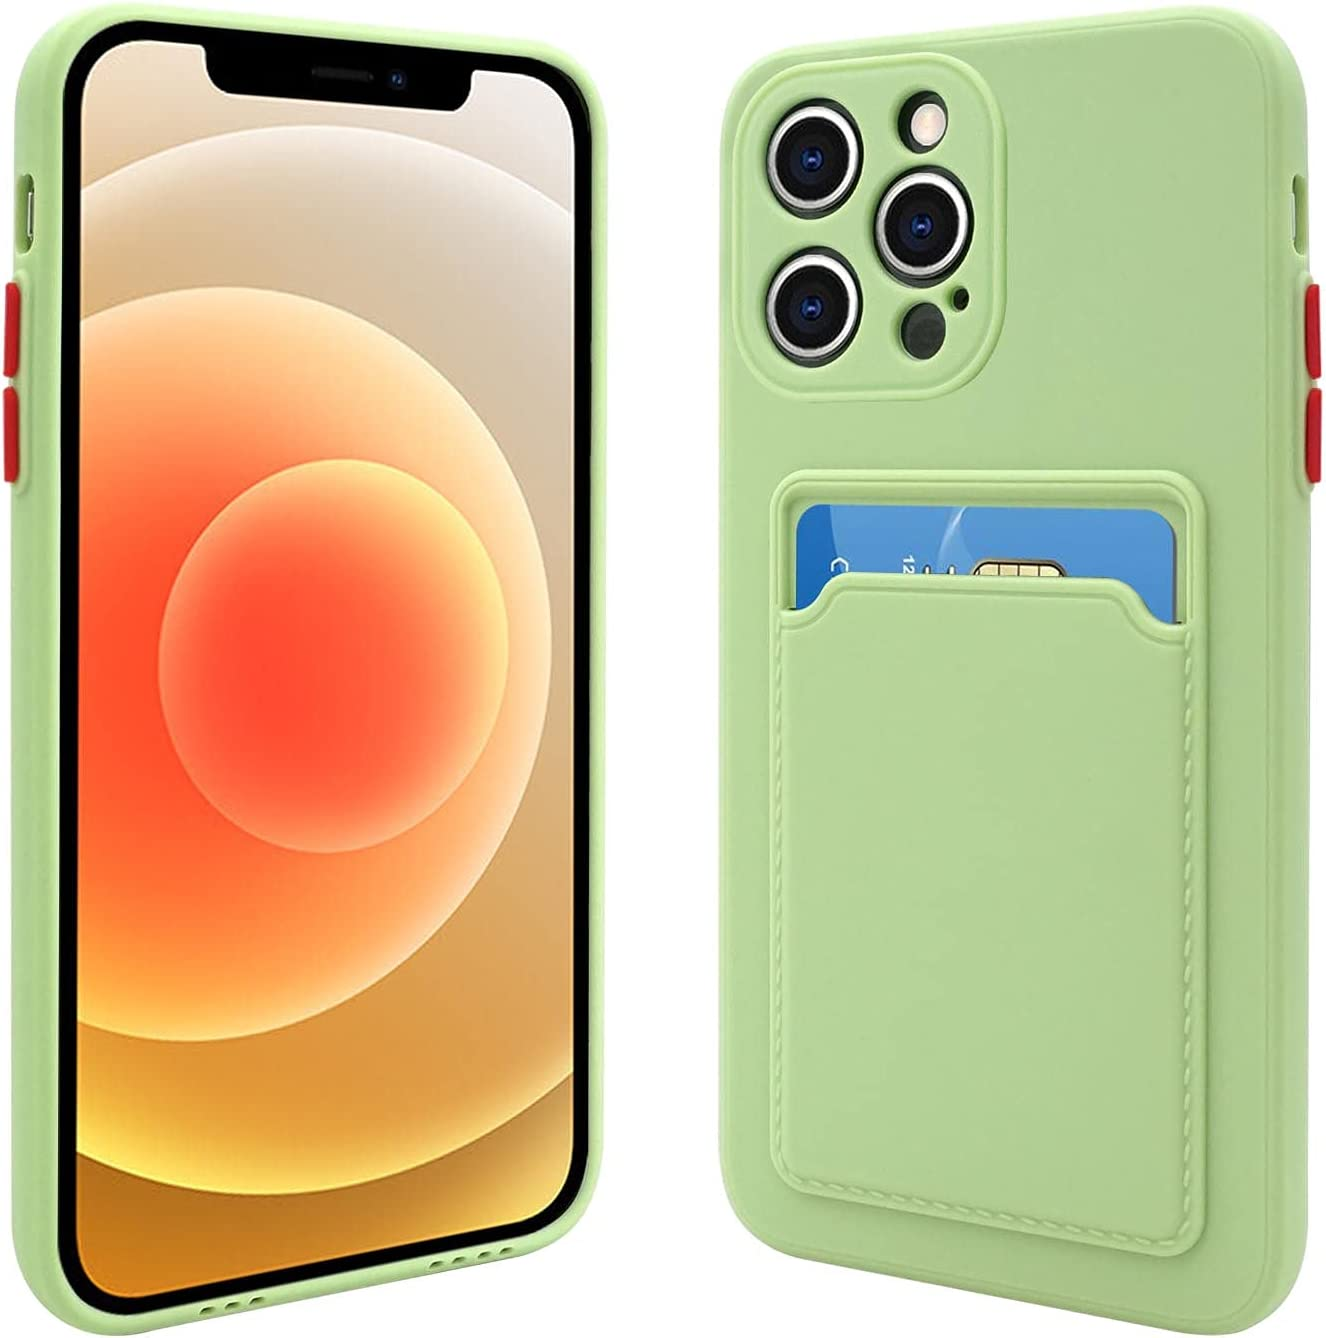 Naiadiy Silicone Card Case Compatible with iPhone 12 Pro Max, Slim Shockproof Protective Case with Credit Card Holder Sleeve (Green)